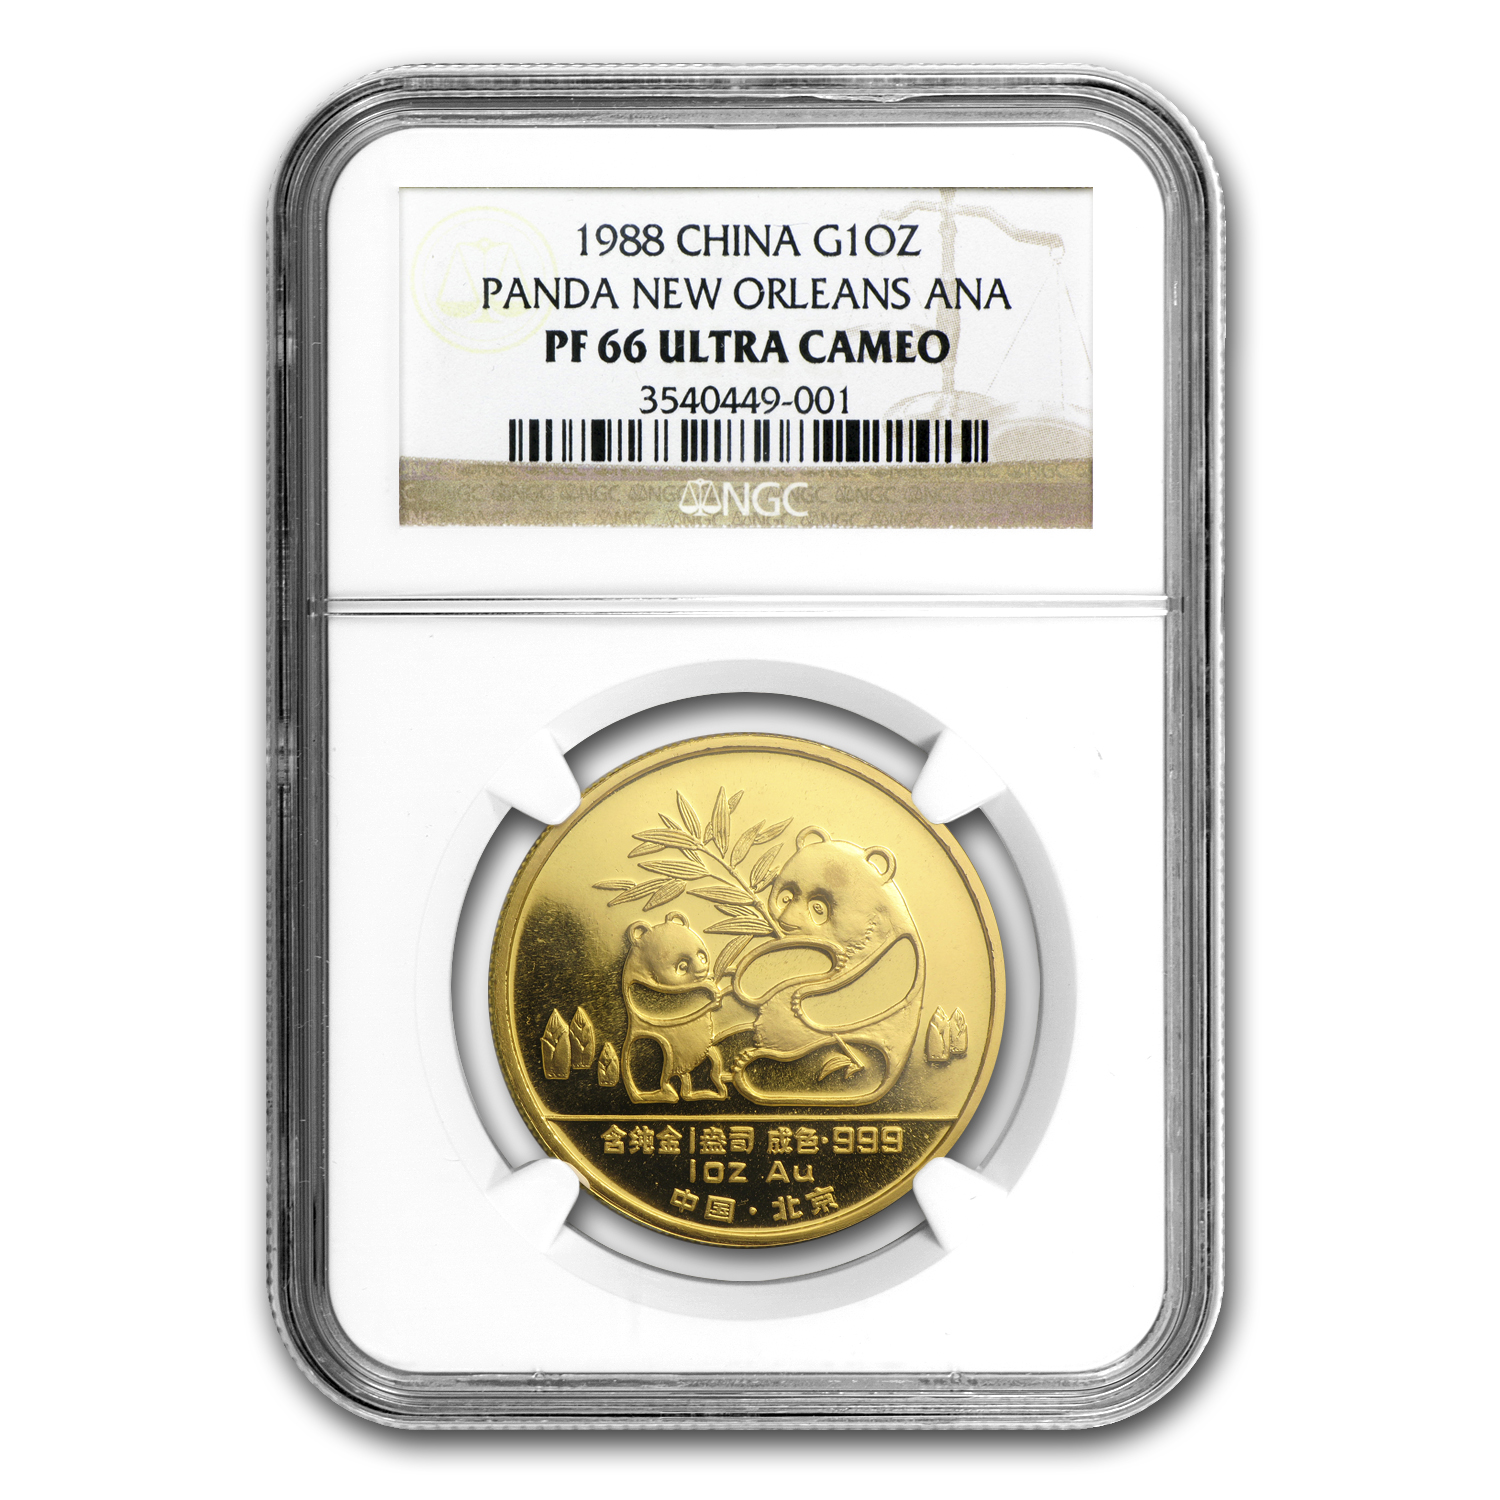 1988 1 oz Gold Chinese Panda - New Orleans PF-66 NGC